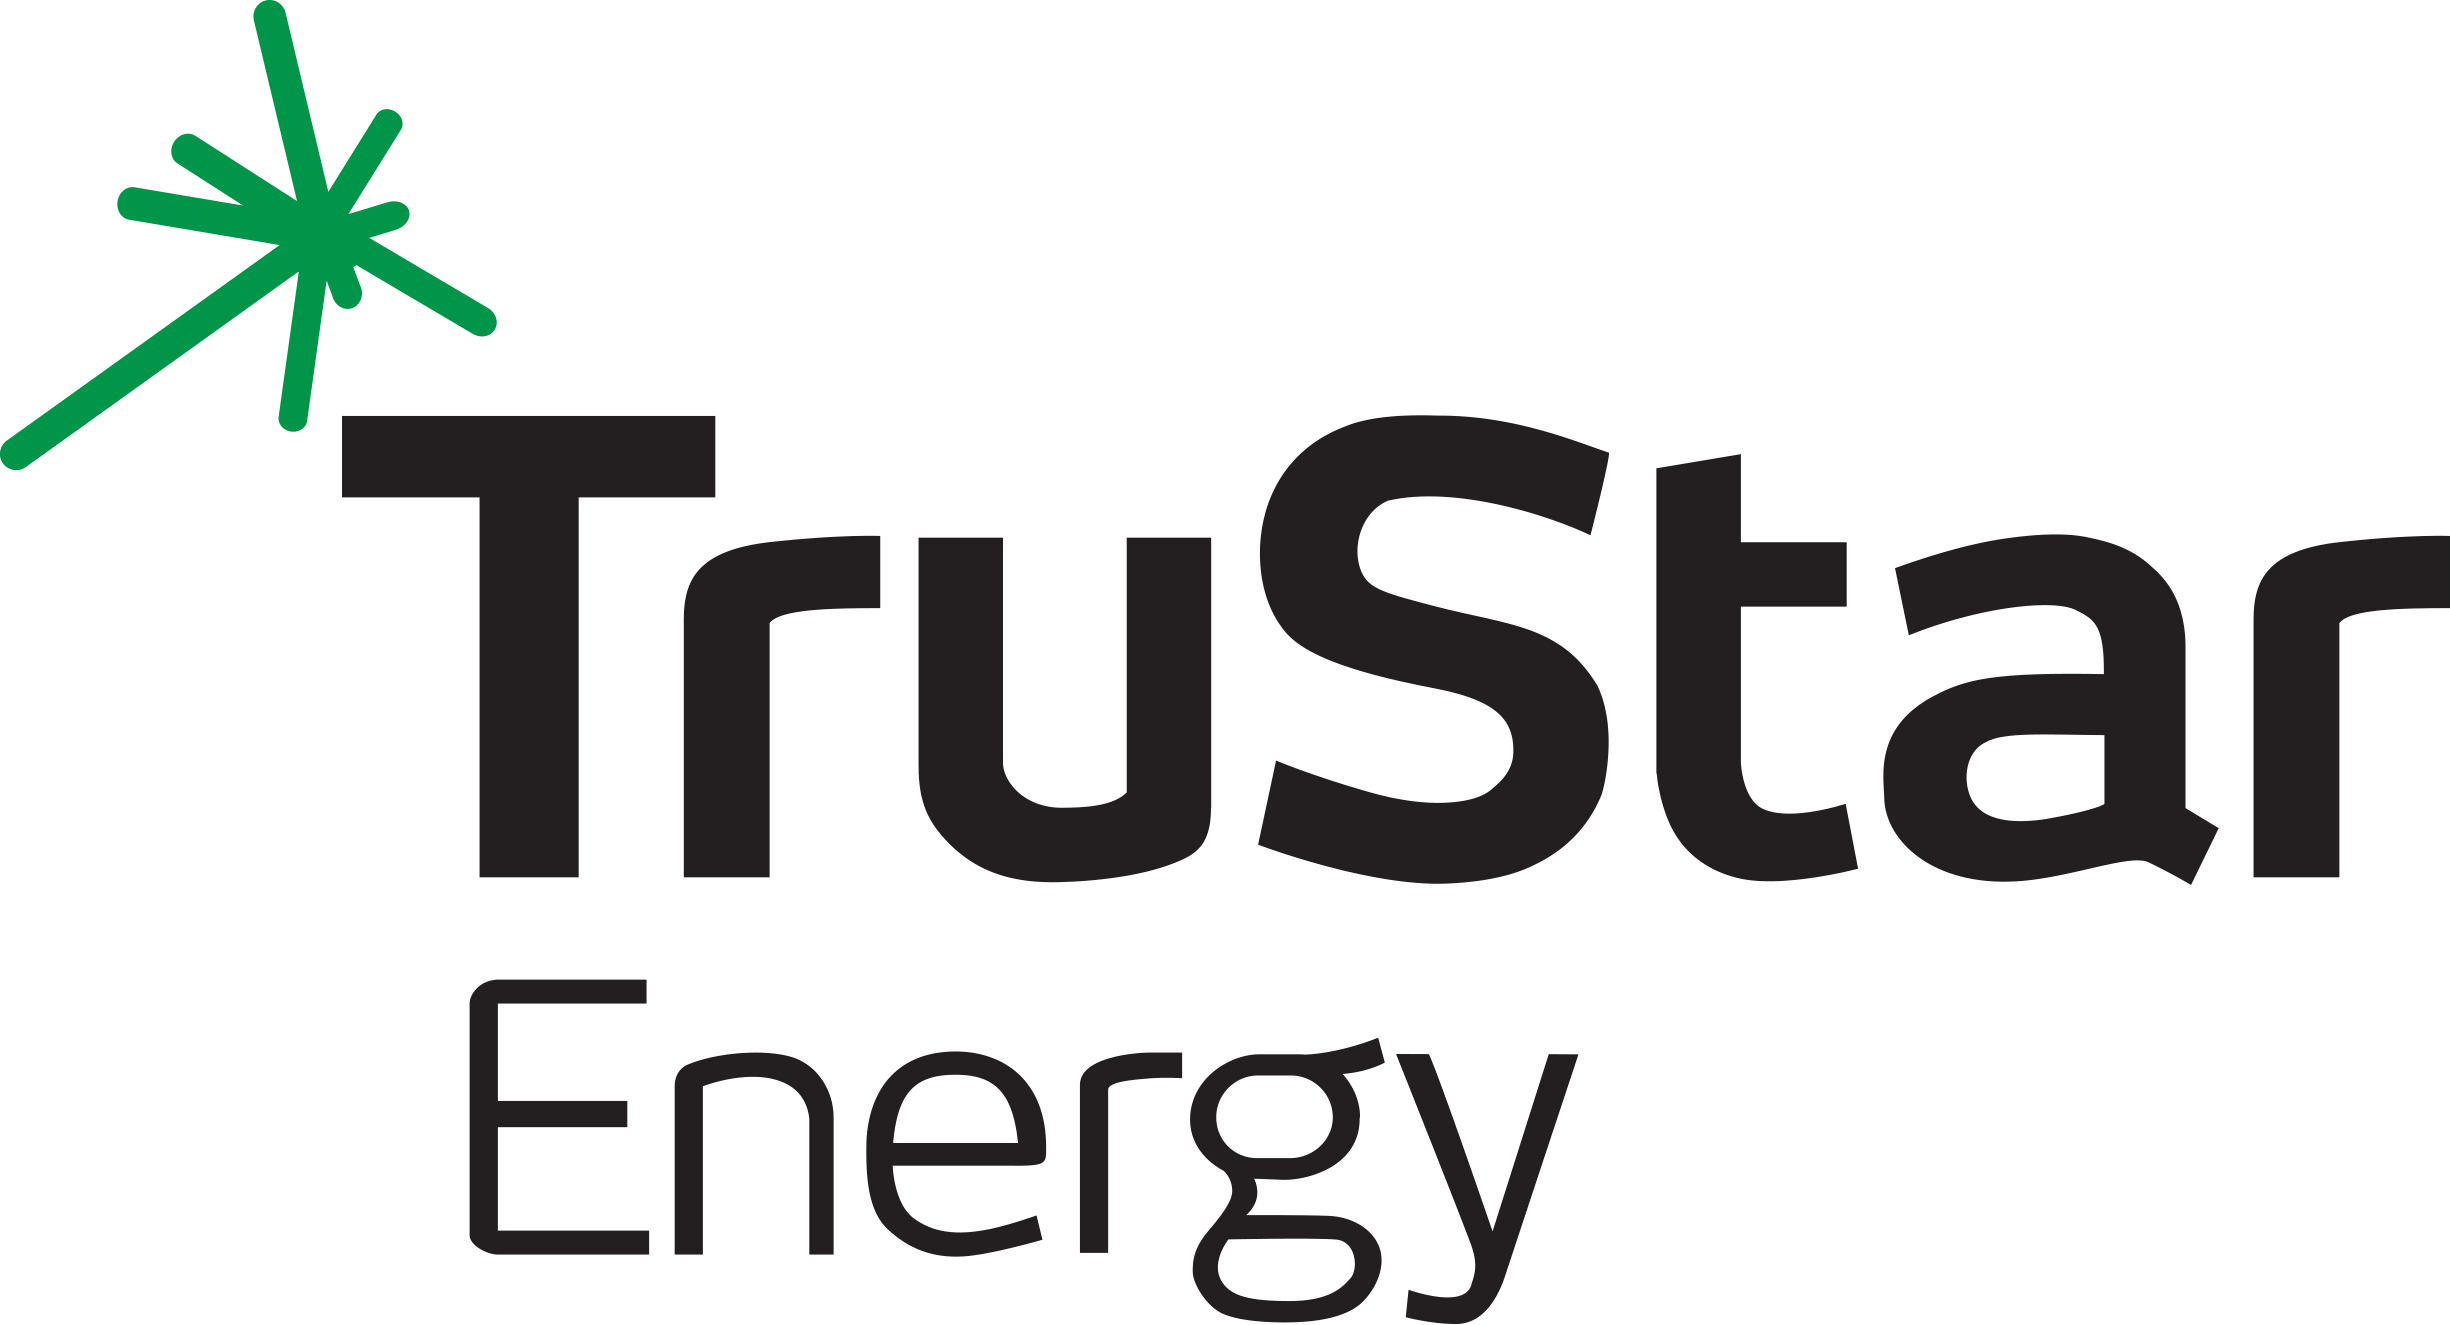 New - Trustar Energy logo (1).png